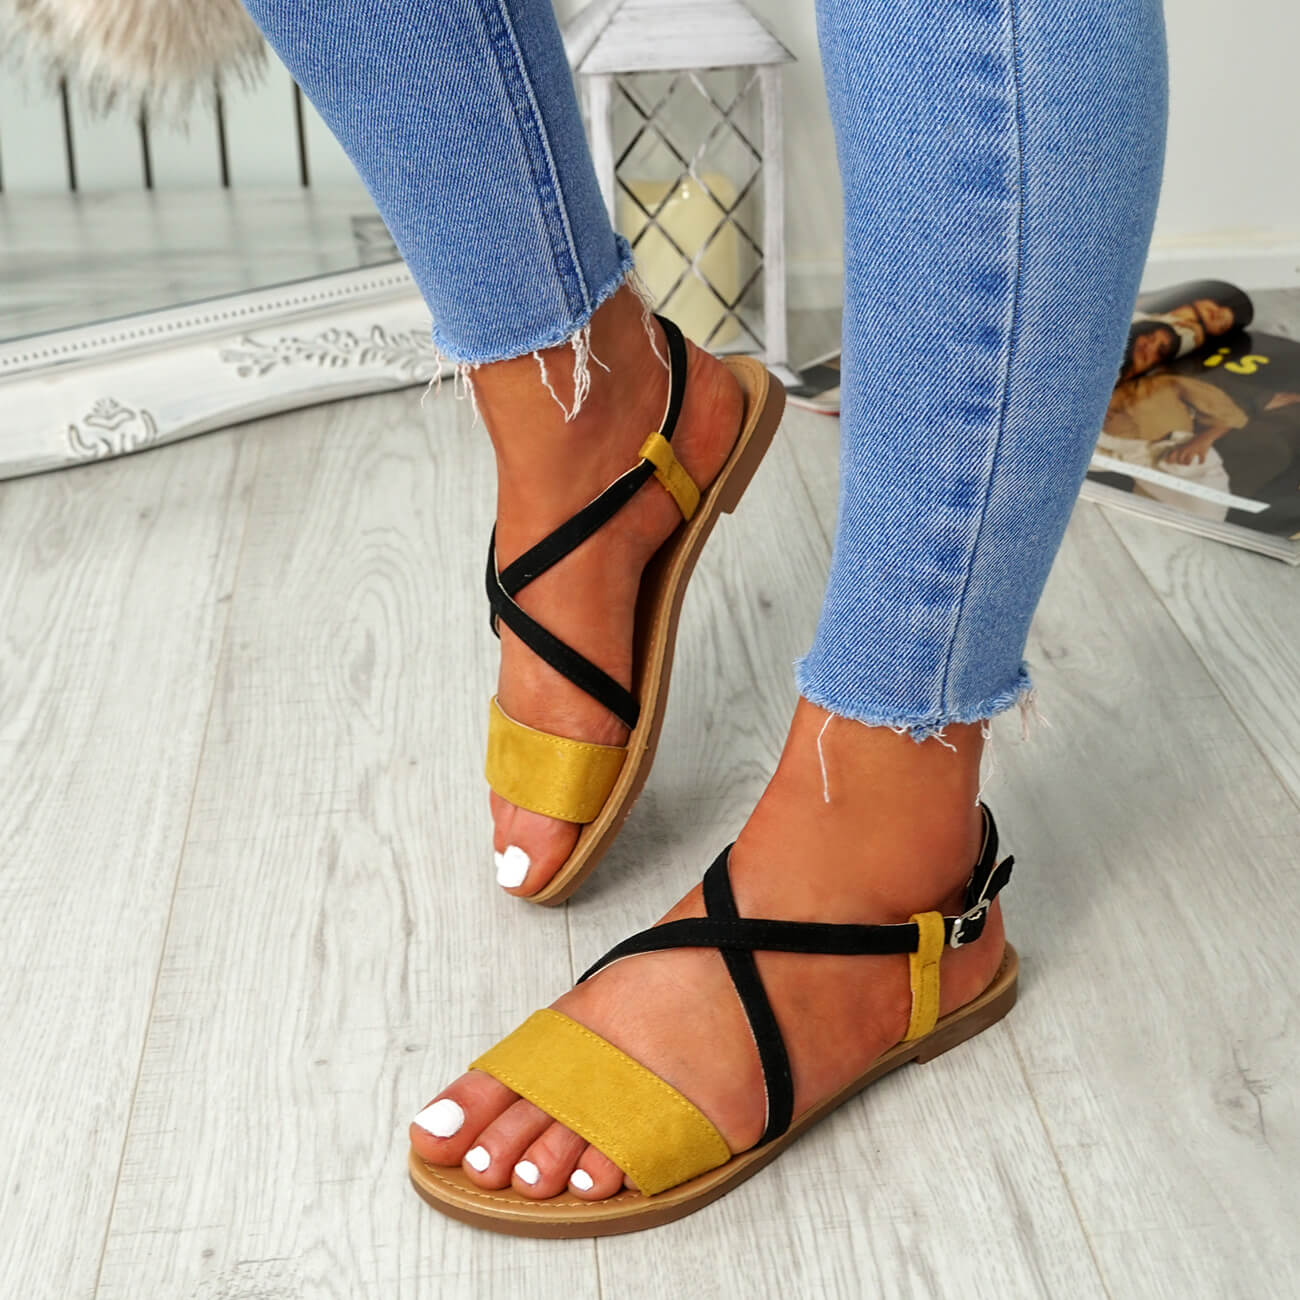 WOMENS-LADIES-ANKLE-STRAP-PEEP-TOE-FLAT-SANDALS-COMFY-SUMMER-SHOES-SIZE thumbnail 23